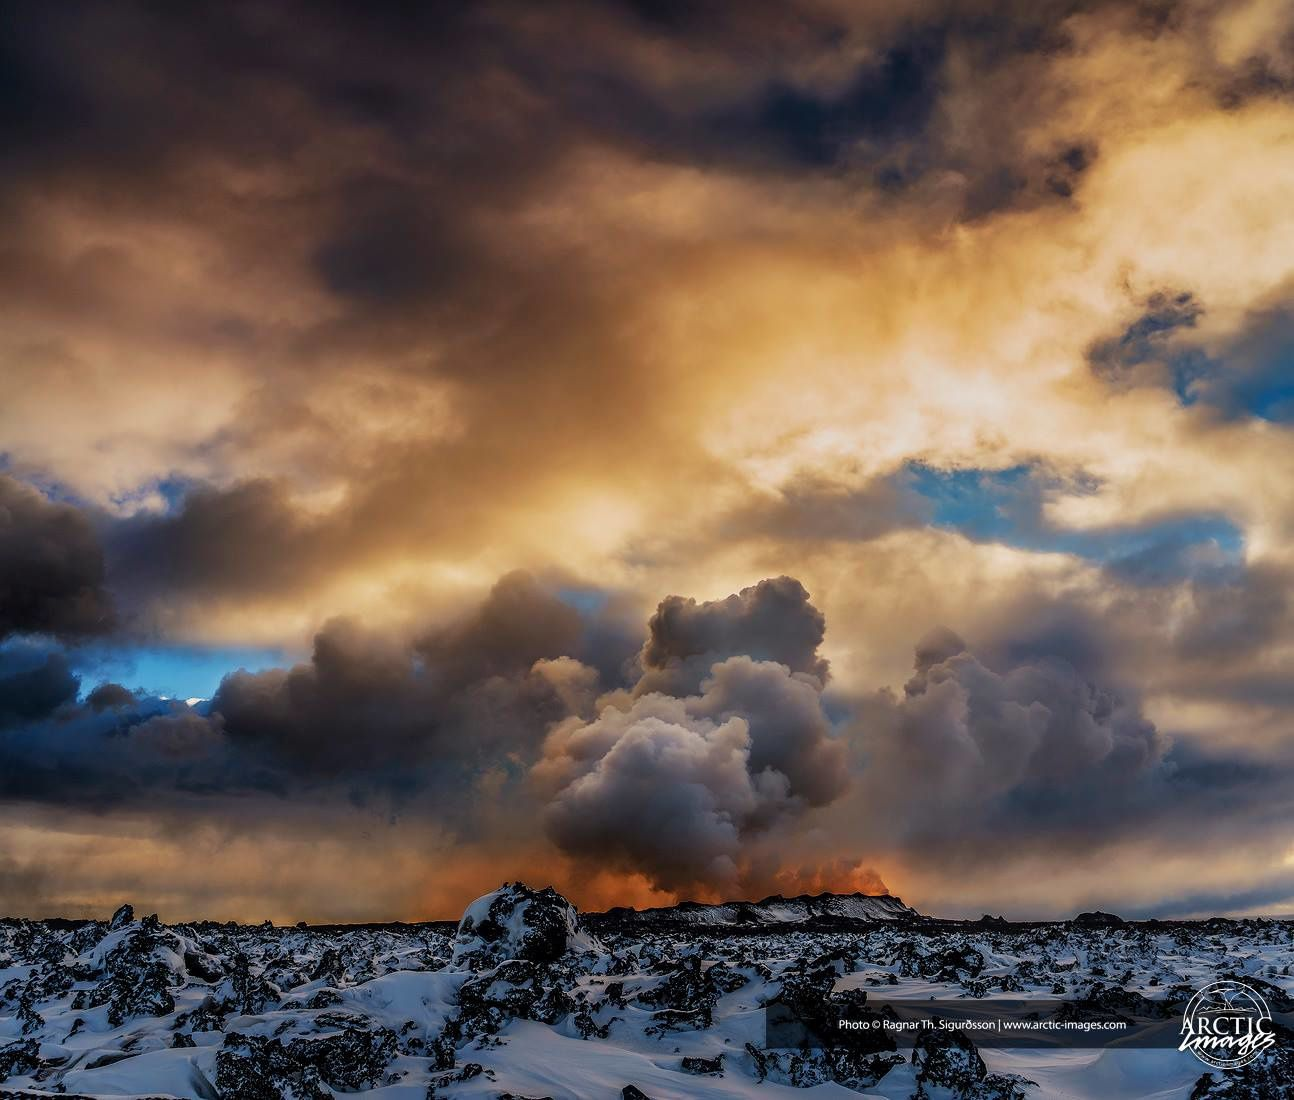 Holuhraun on 03/02/2015 - photo R.Sigurdsson - Artic pictures